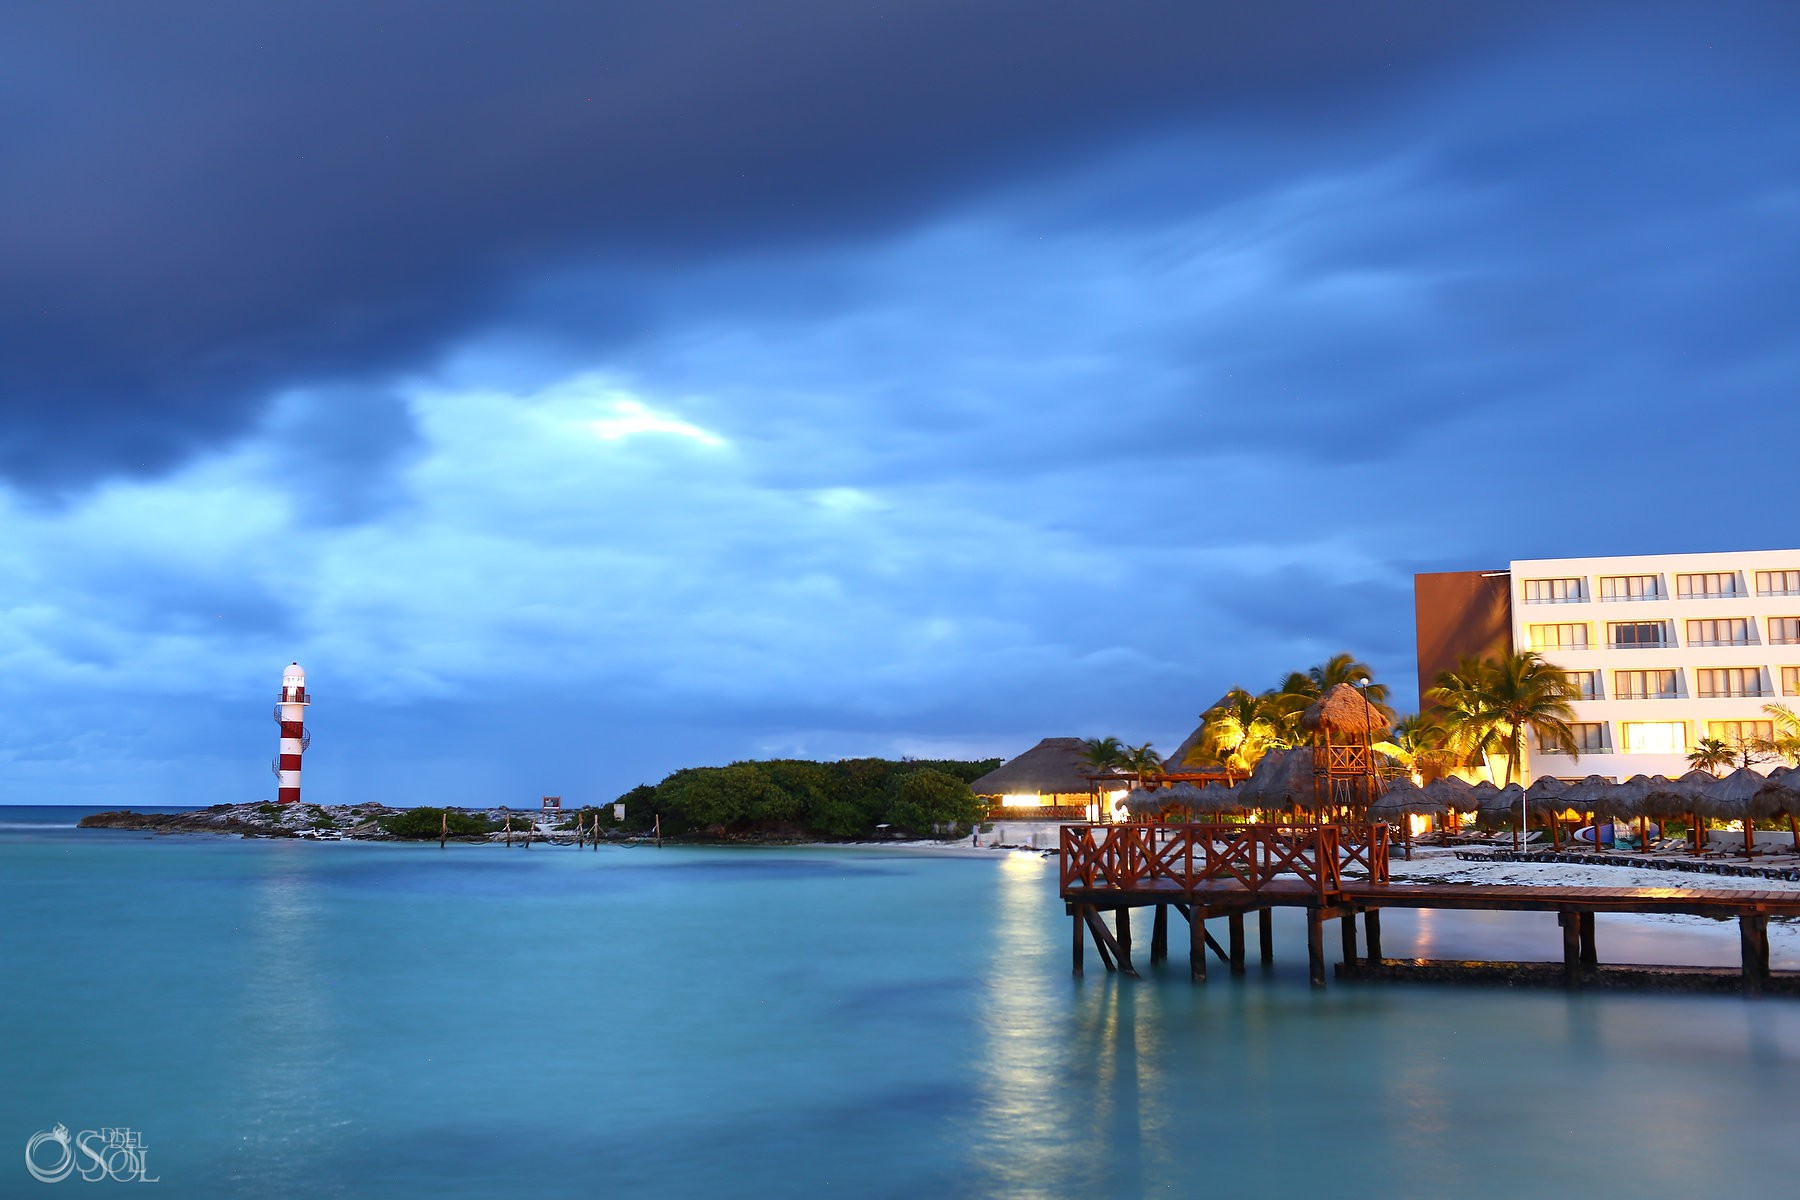 epic sky ocean view at Hyatt Ziva Cancun, Mexico del sol photography